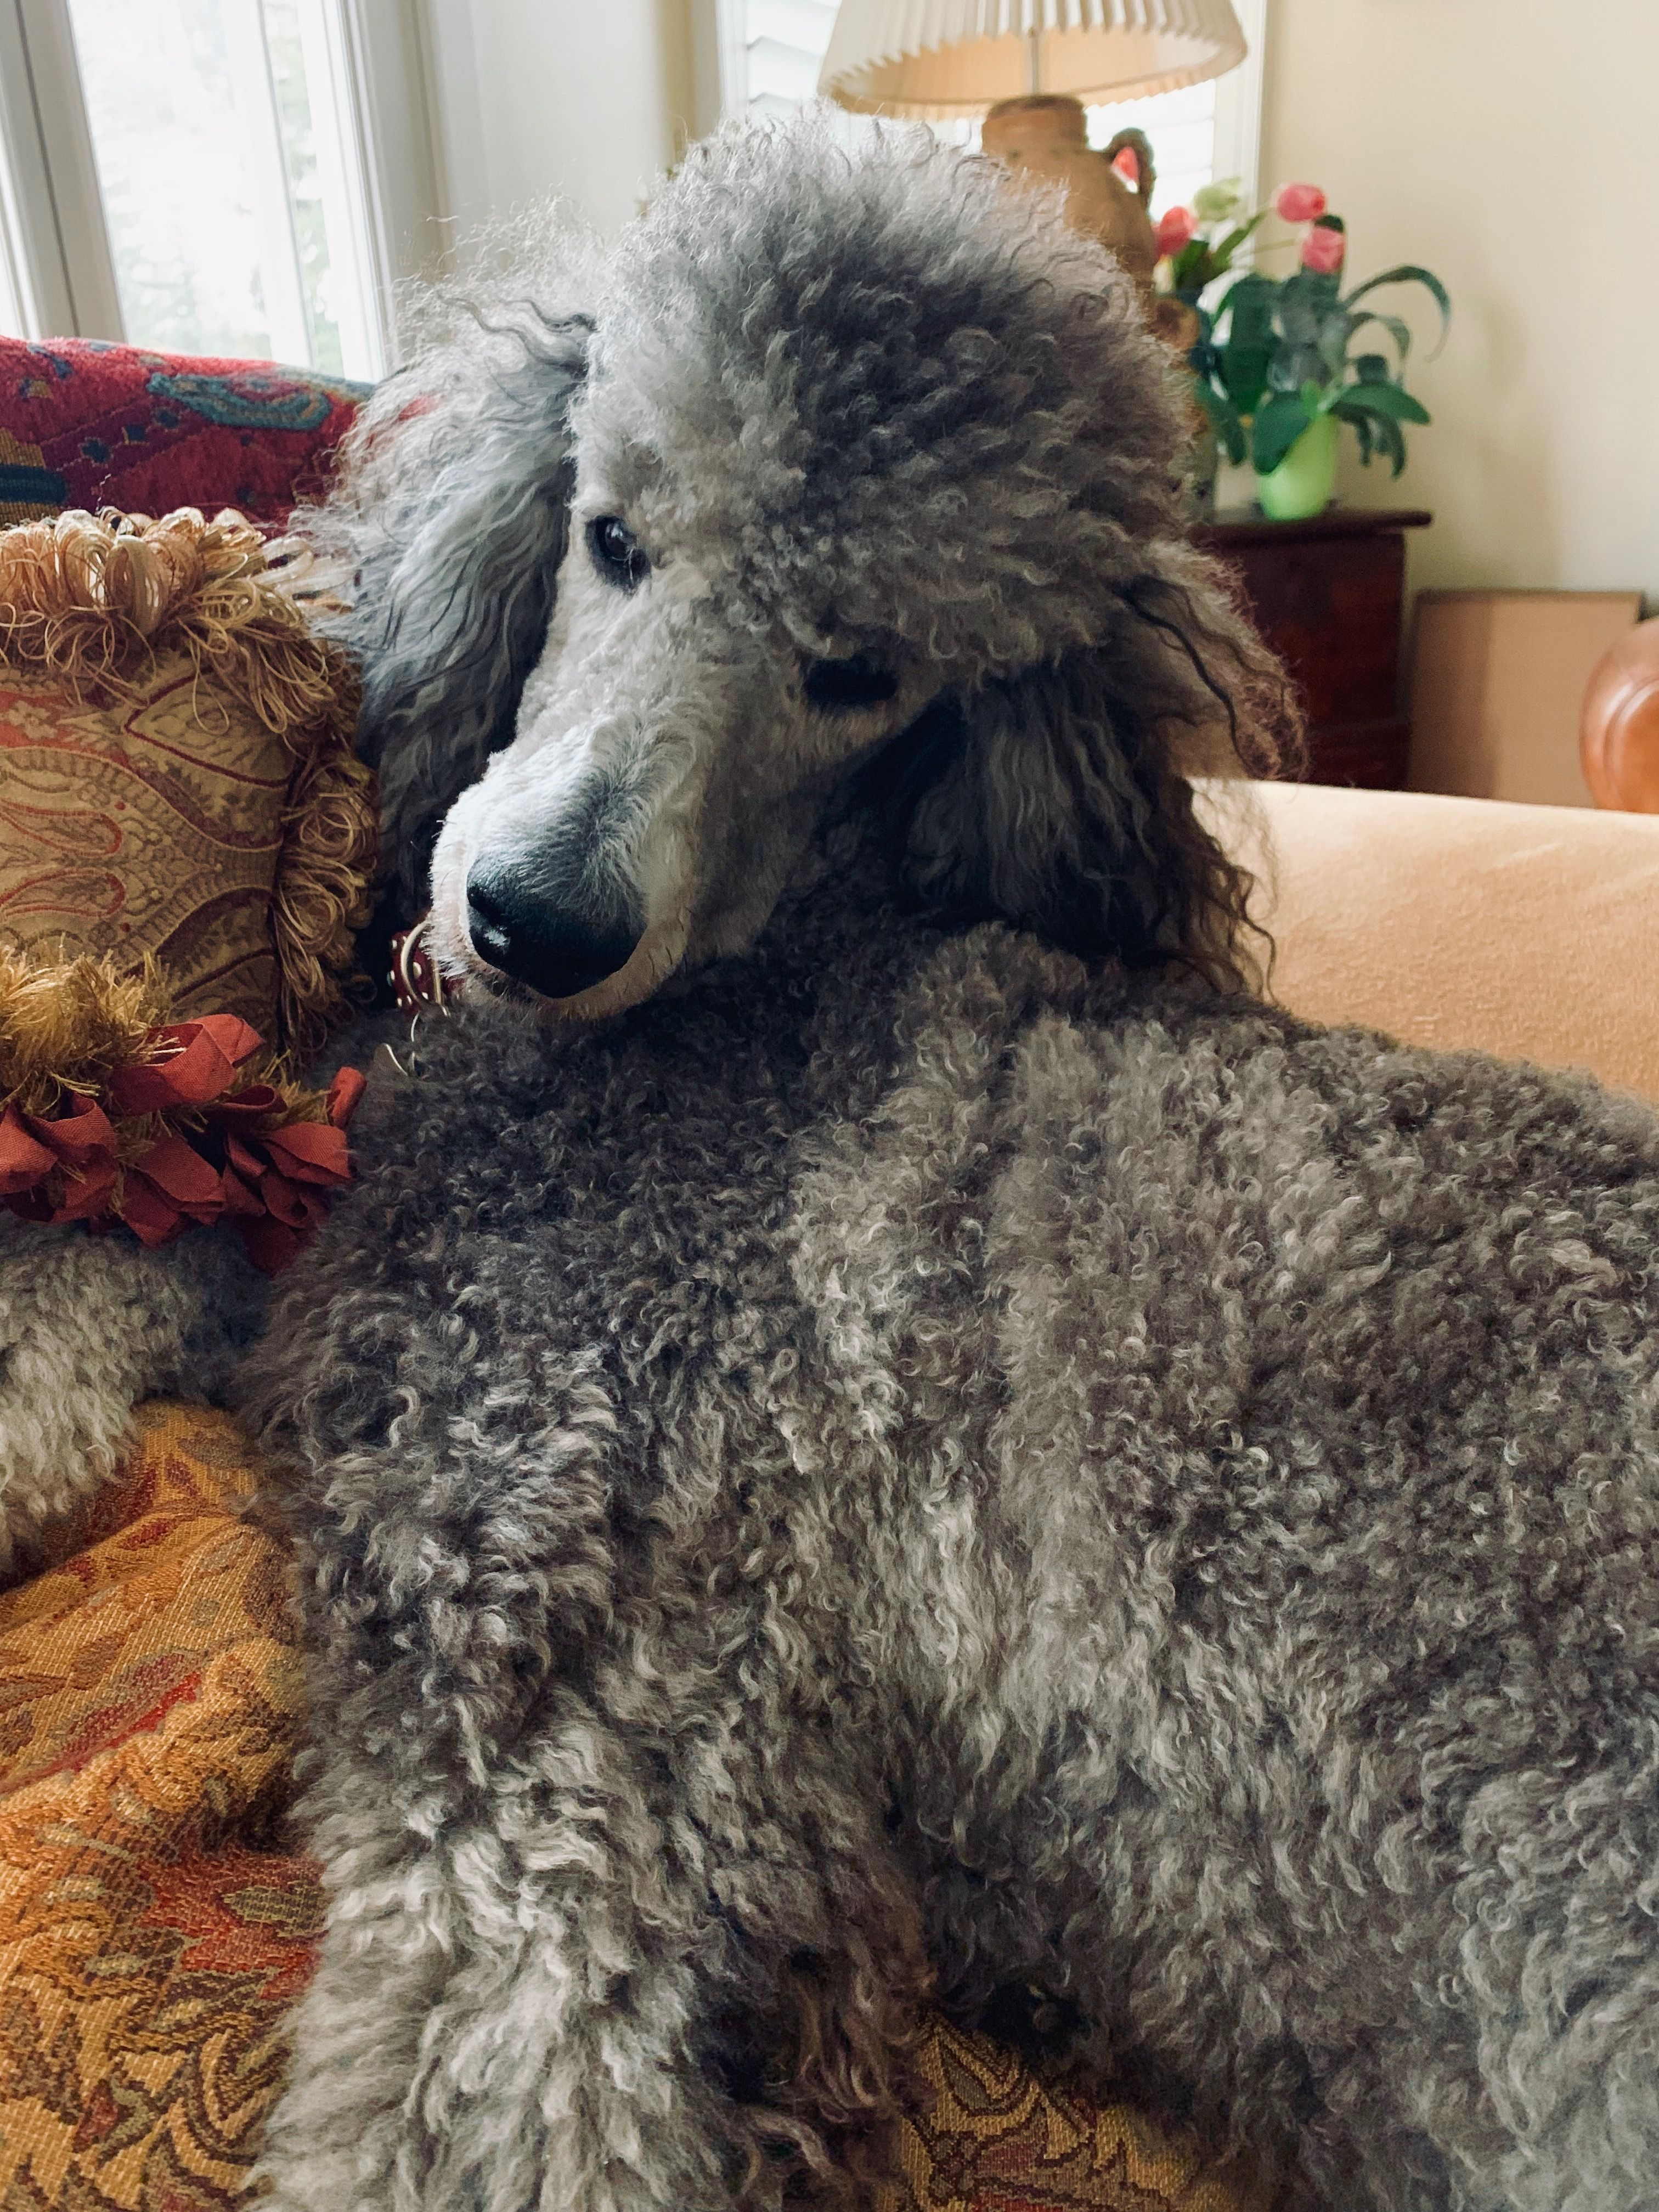 Pin By Susie Triplett On Poodle Craze Poodle Dog Love Puppy Love